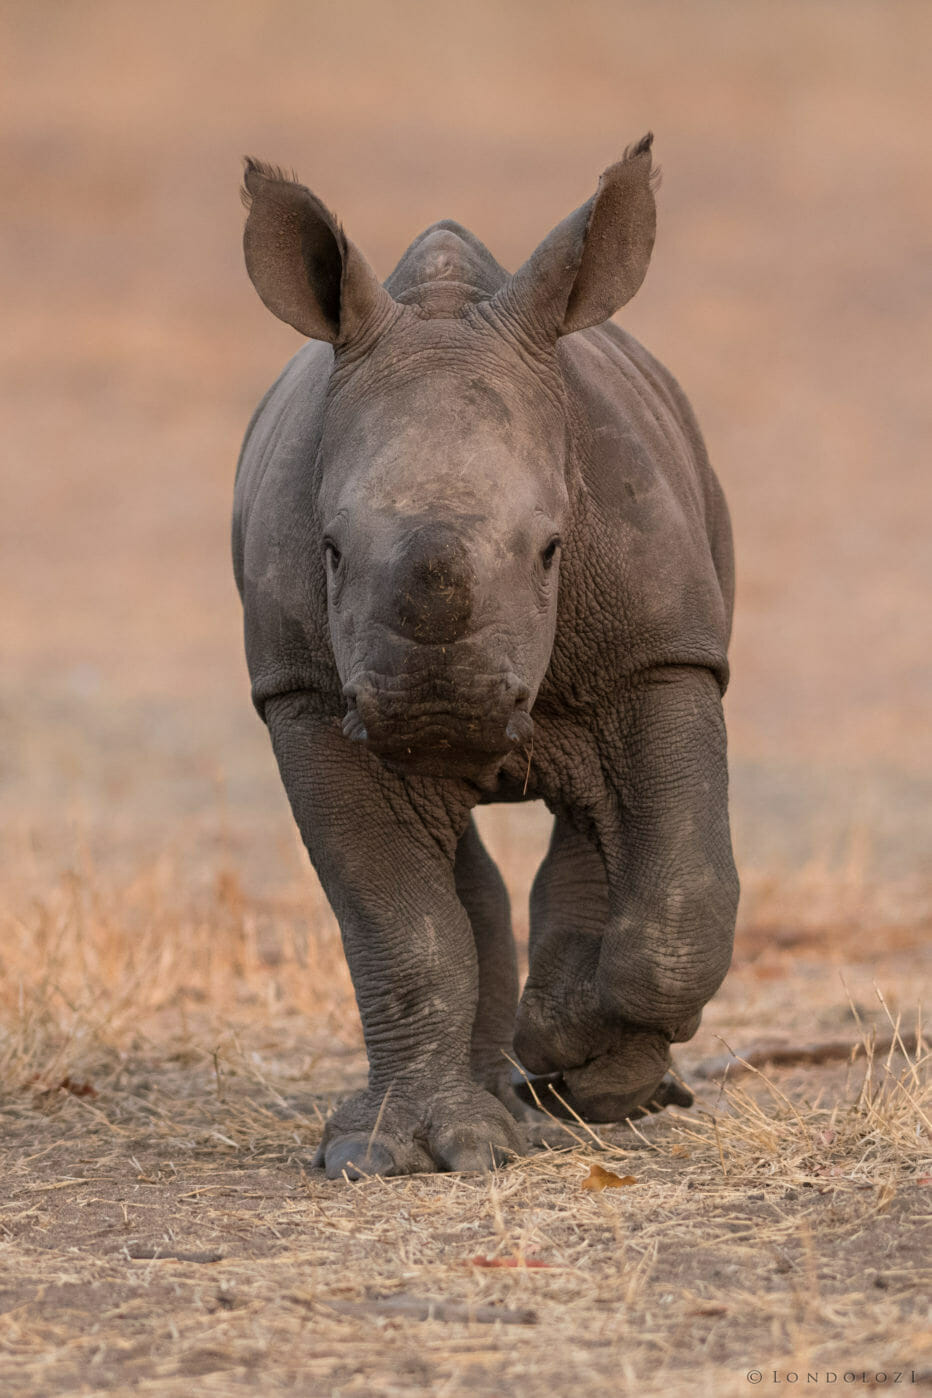 A rhino baby/calf walks towards the camera at Londolozi